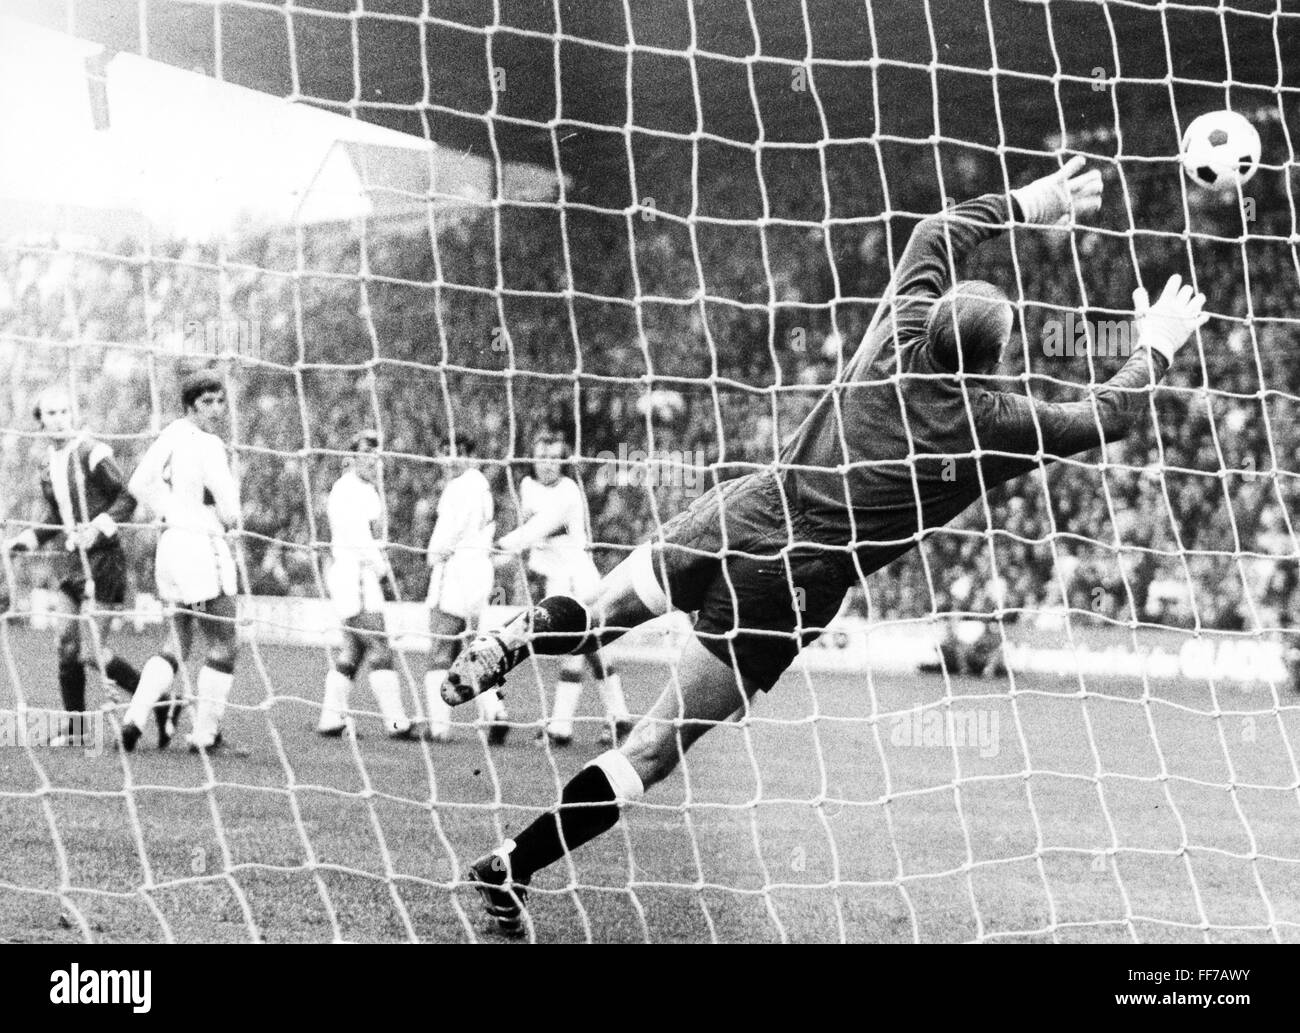 sports, football, game, Germany, national league, season 1970 / 1971, 13th match day, game Borussia Moenchengladbach - Stock Image